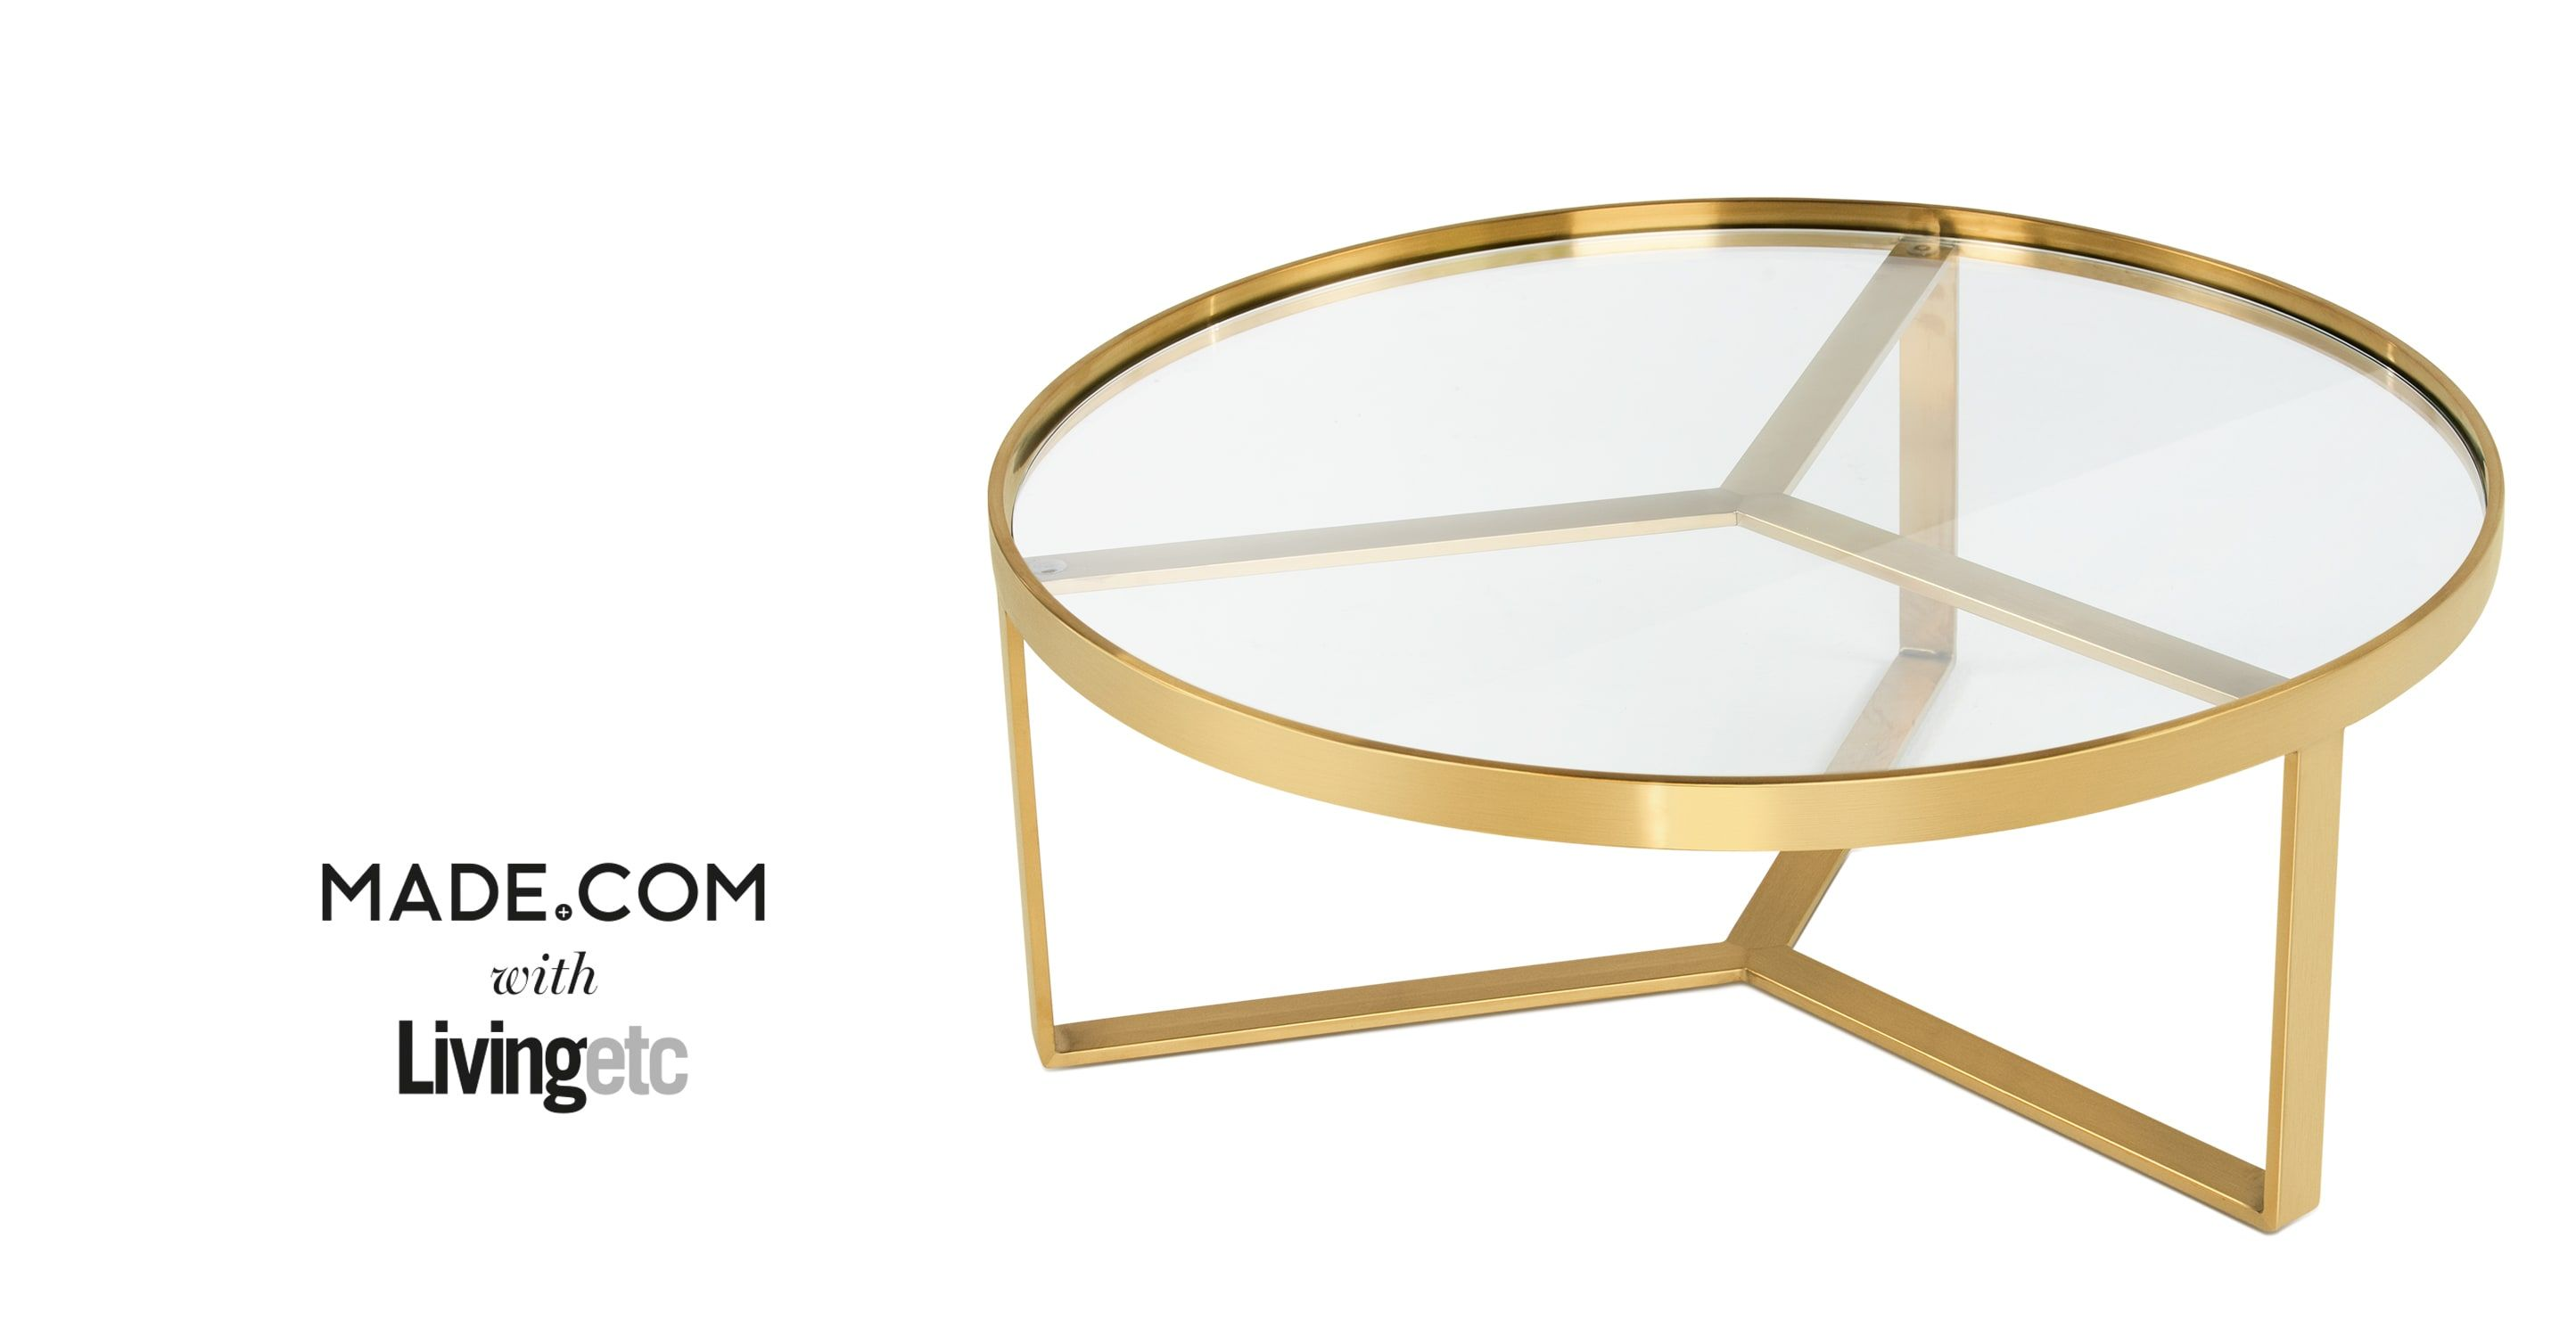 Aula coffee table brushed brass and glass from made express aula coffee table brushed brass and glass from made express delivery transform your living space with great design appreciating simple geome geotapseo Images